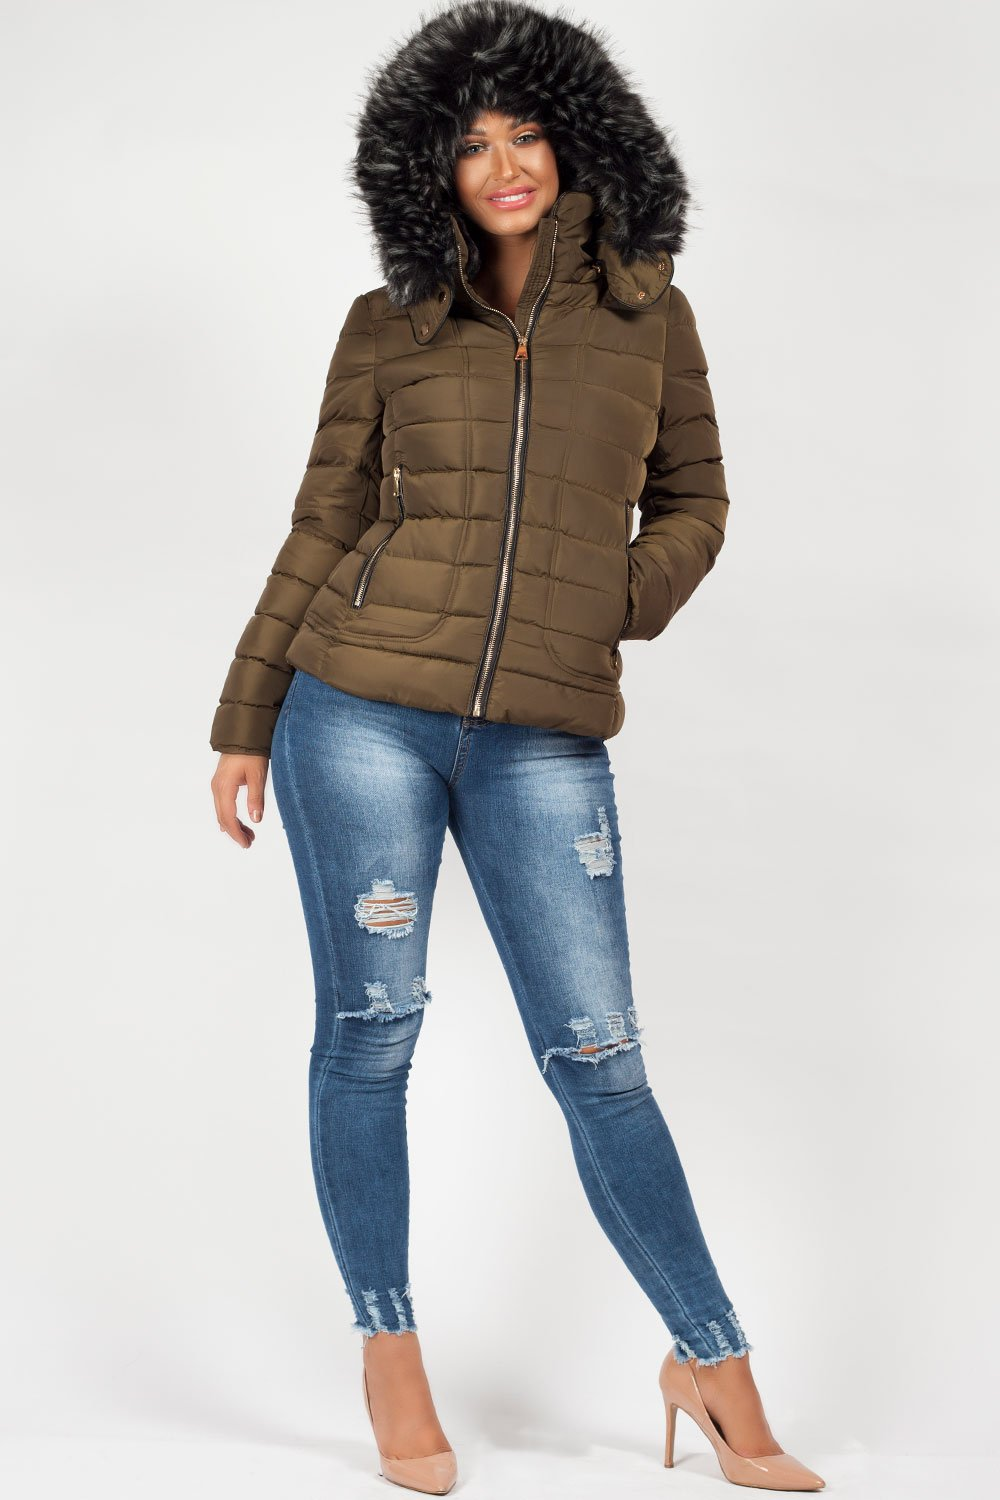 567193f87 Khaki Faux Fur Hooded Puffer Coat – Styledup.co.uk